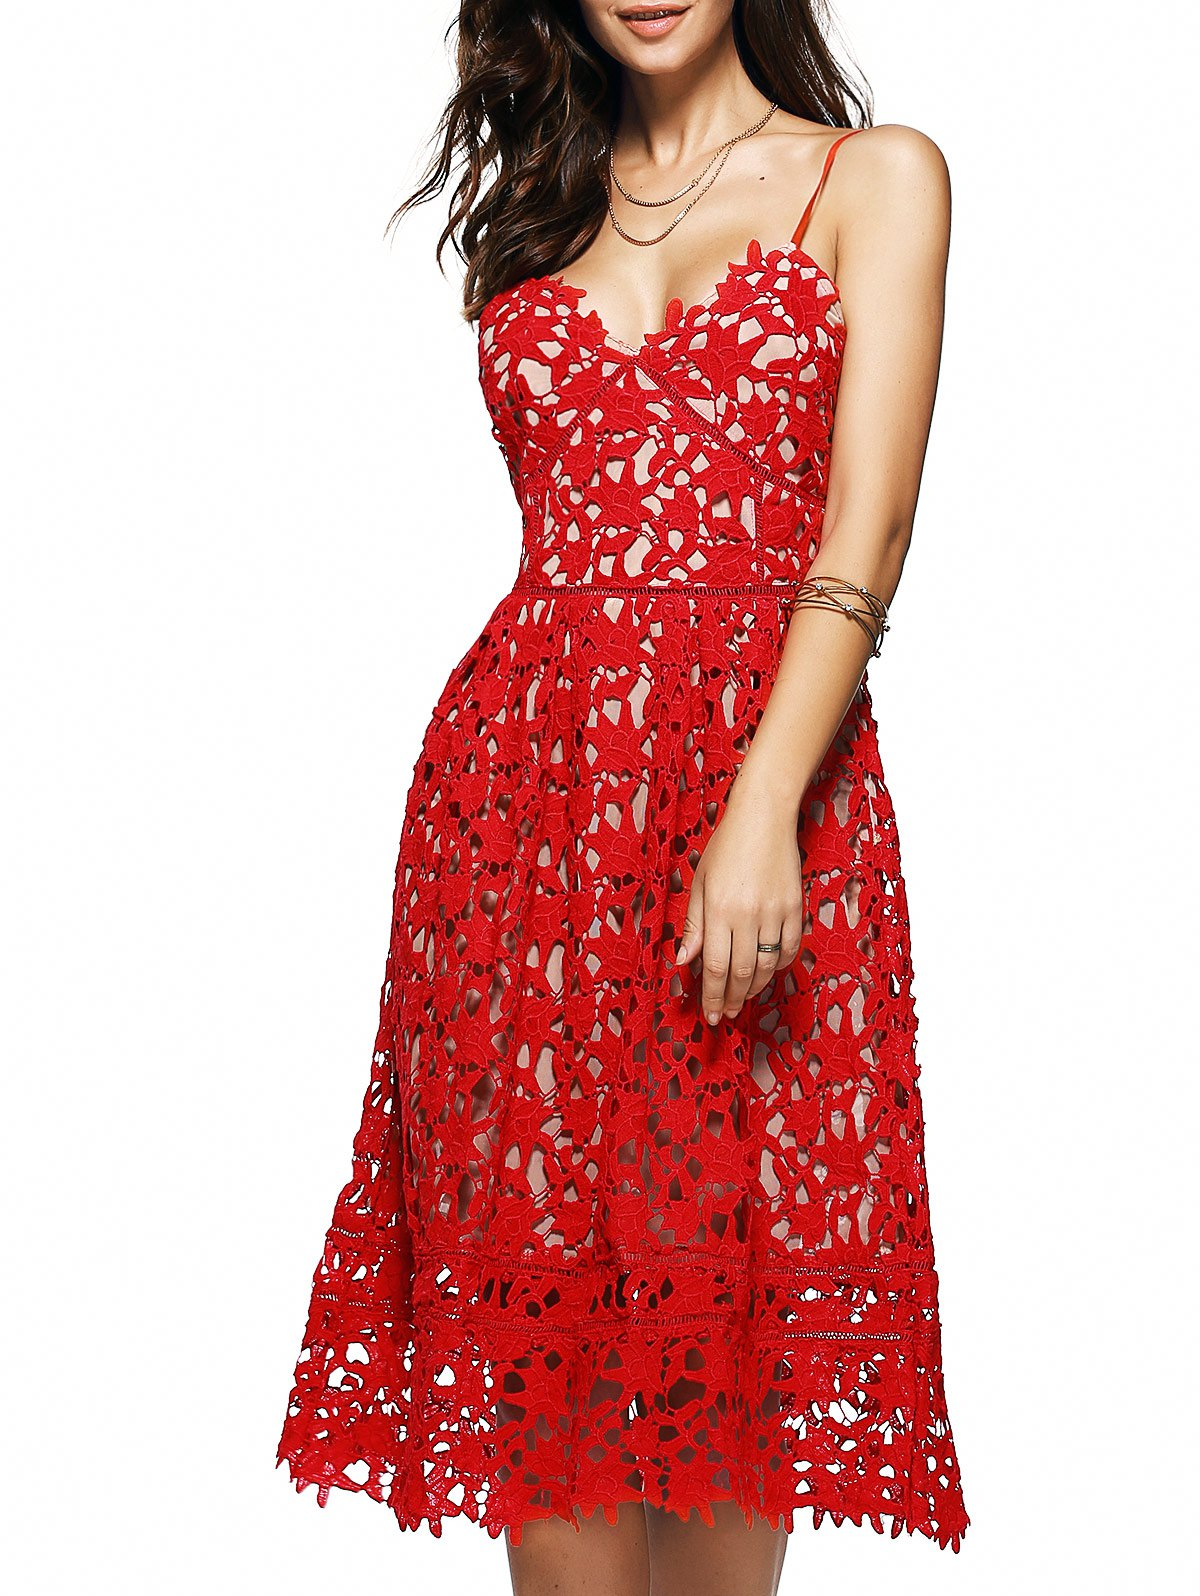 Spaghetti Straps Crochet Flower Cut Out Dress